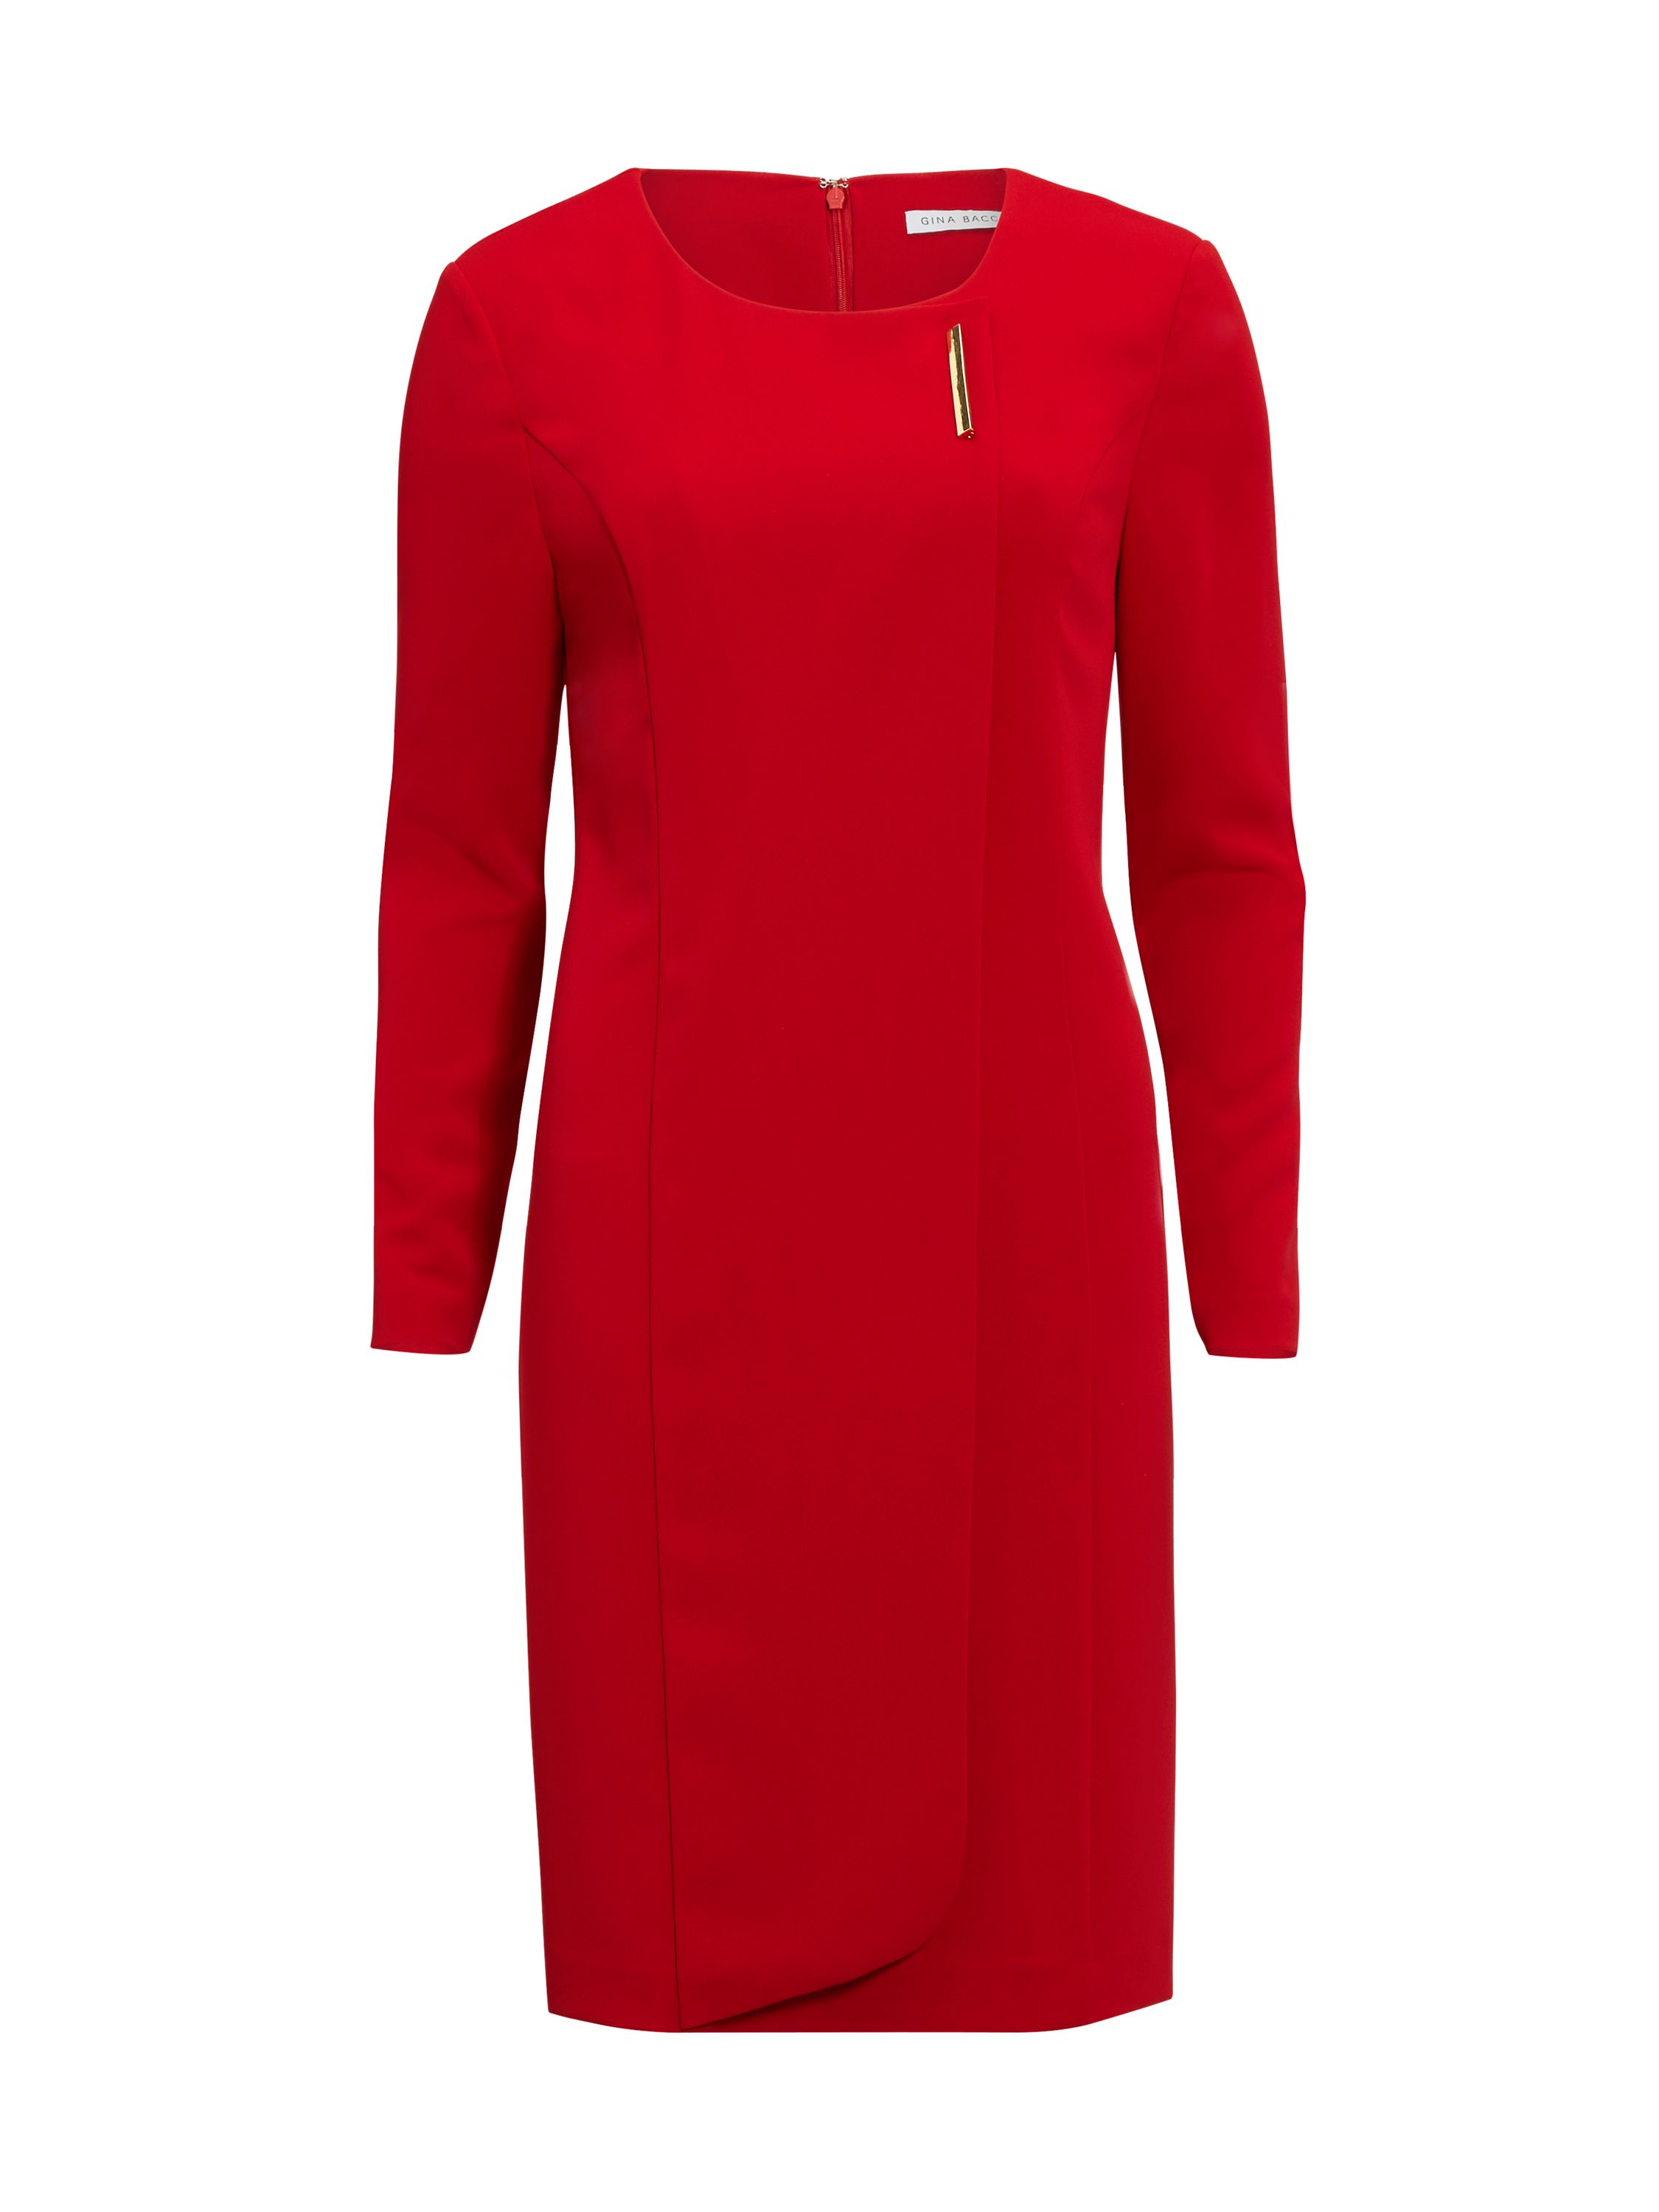 Gina Bacconi Stretch Moss Crepe Dress With Gold Trim, Red